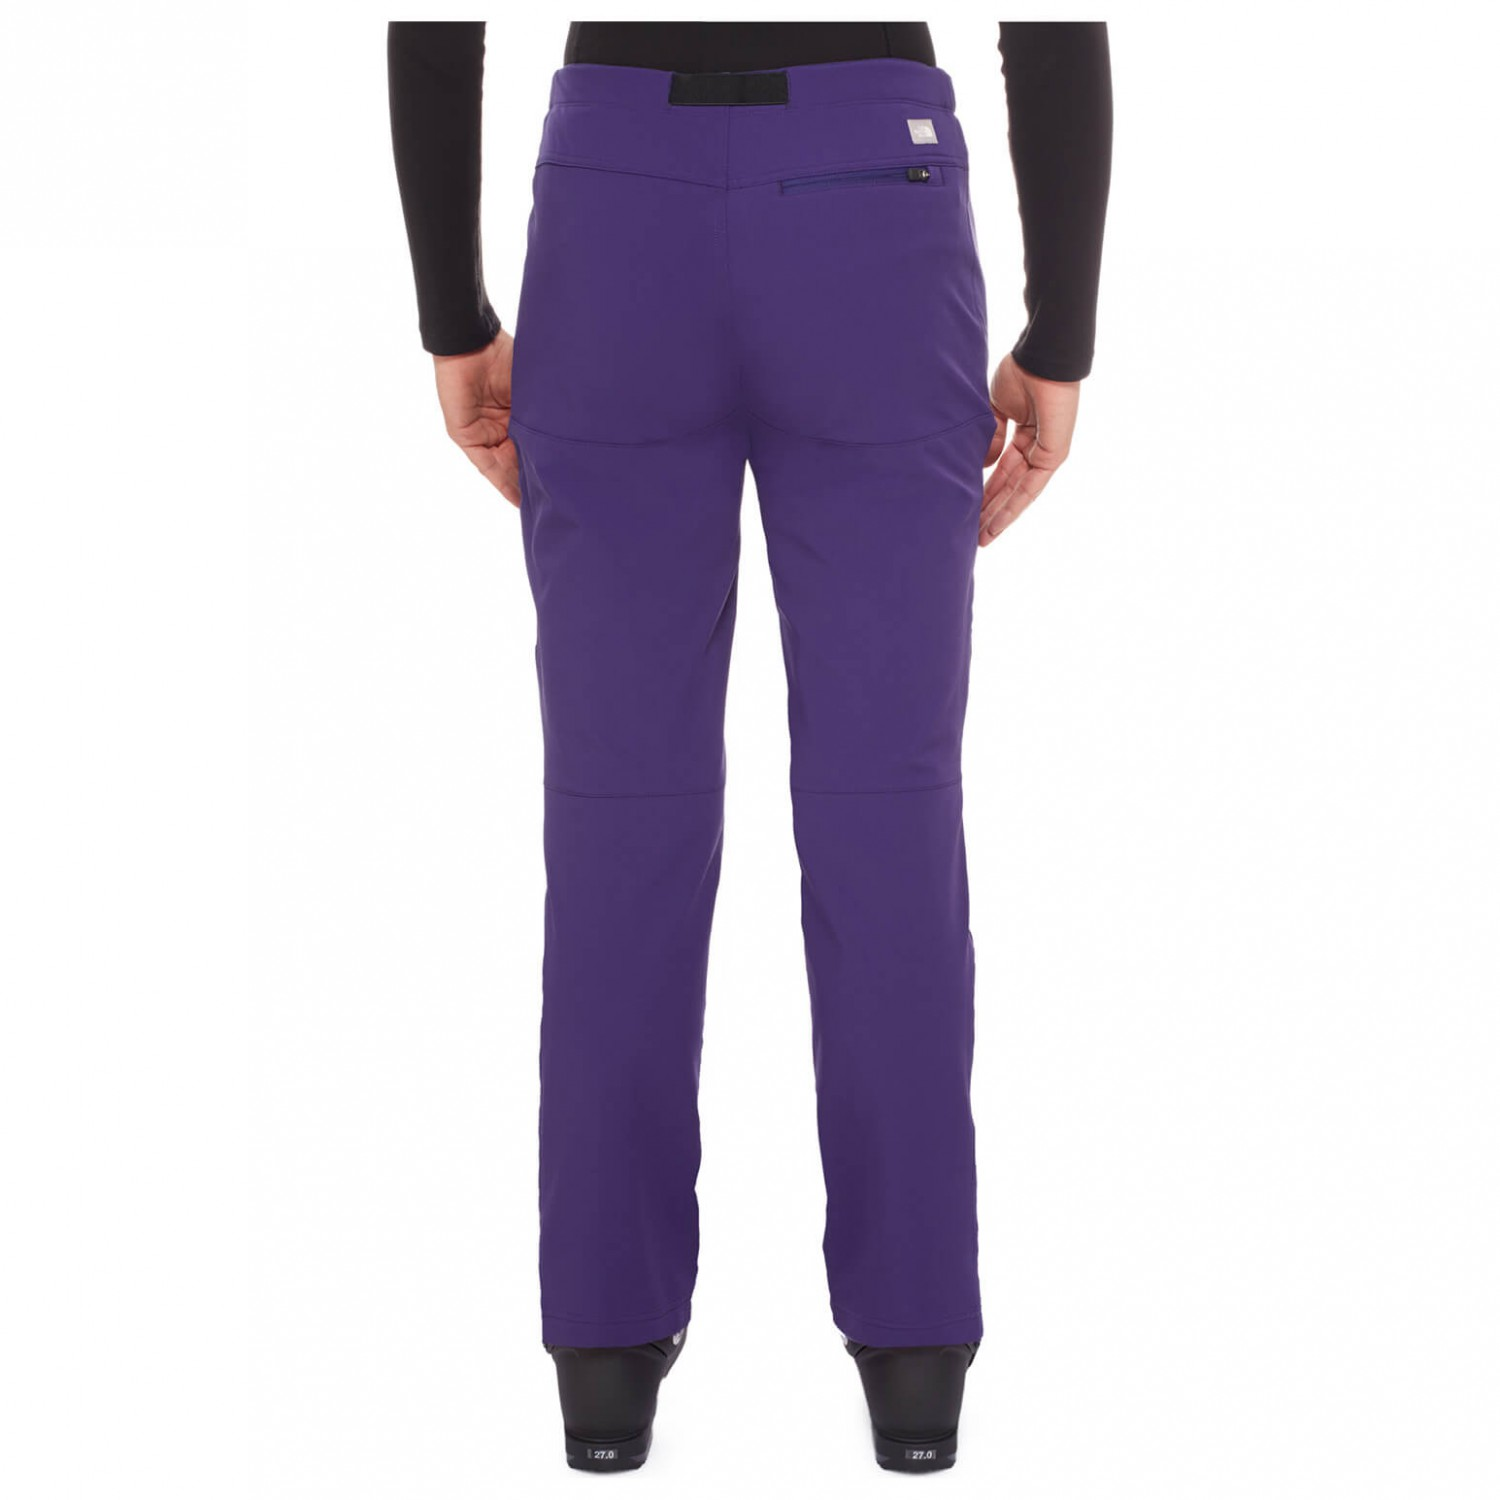 315618a58 The North Face - Women's Diablo Pant - Winter trousers